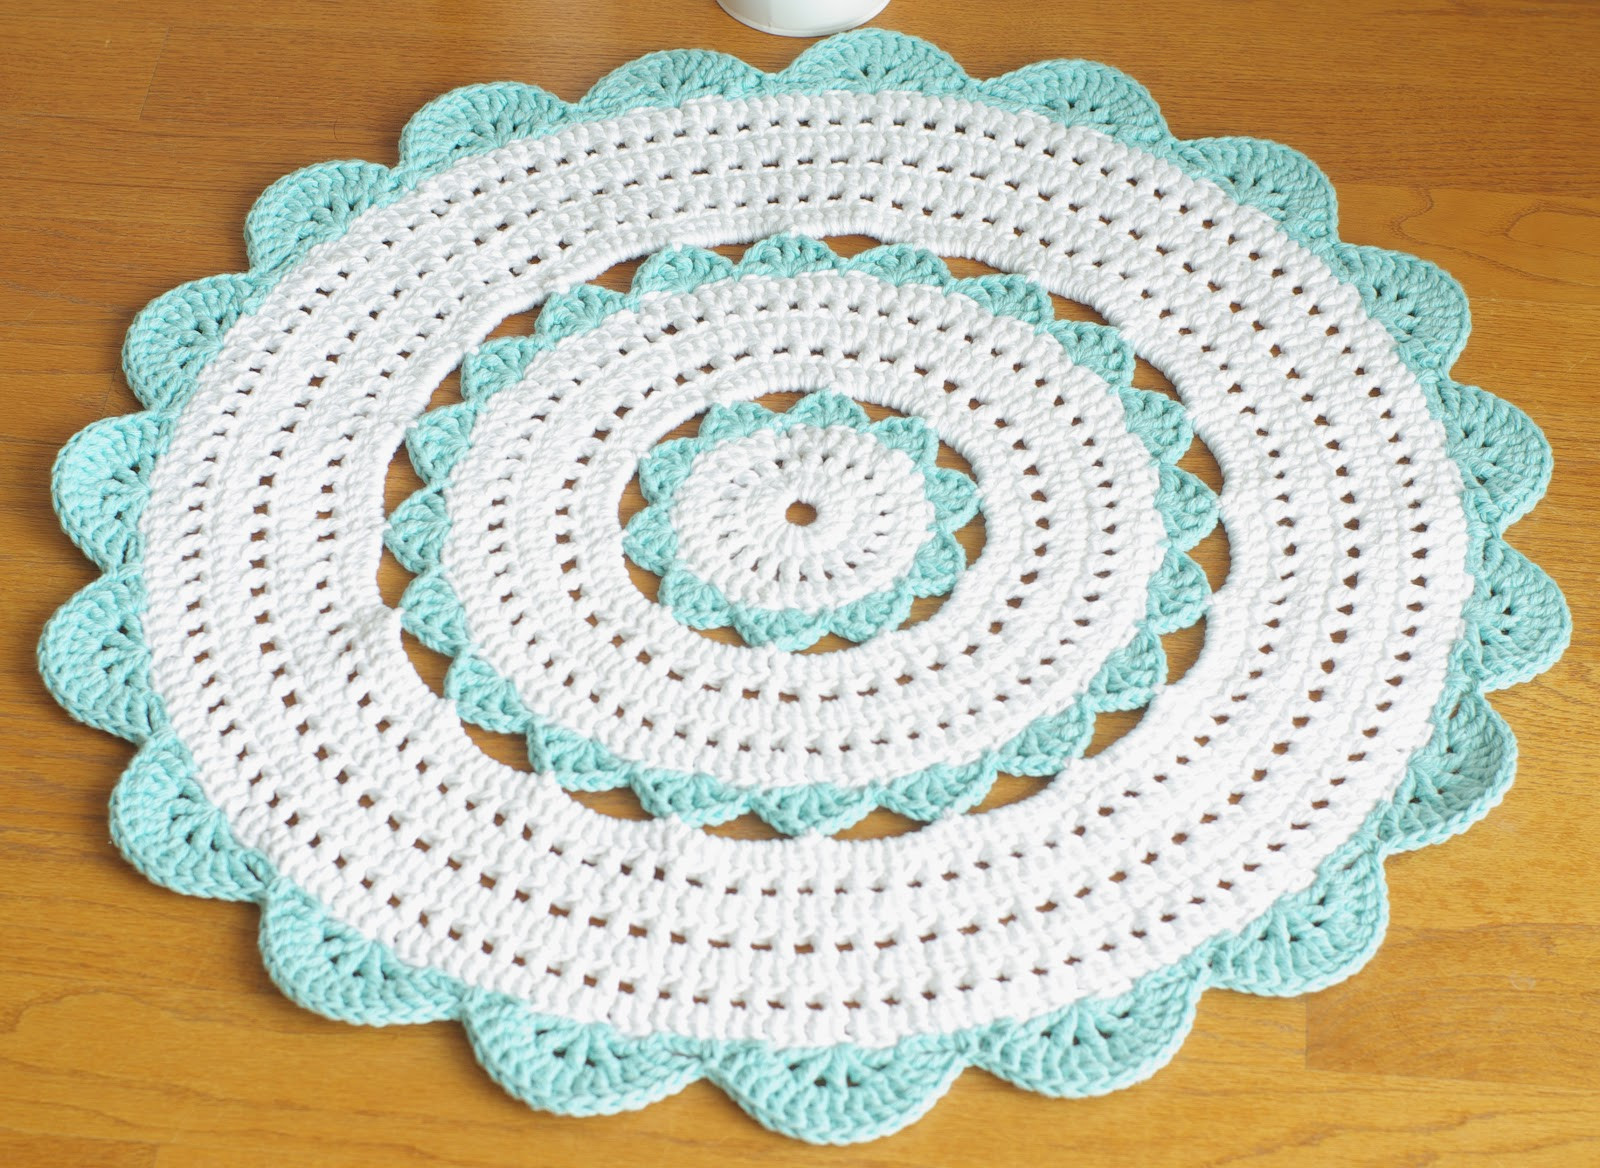 Crochet Rug Patterns Elegant Handy Crafter Custom Made isabella Doily Rug In Of Amazing 41 Images Crochet Rug Patterns